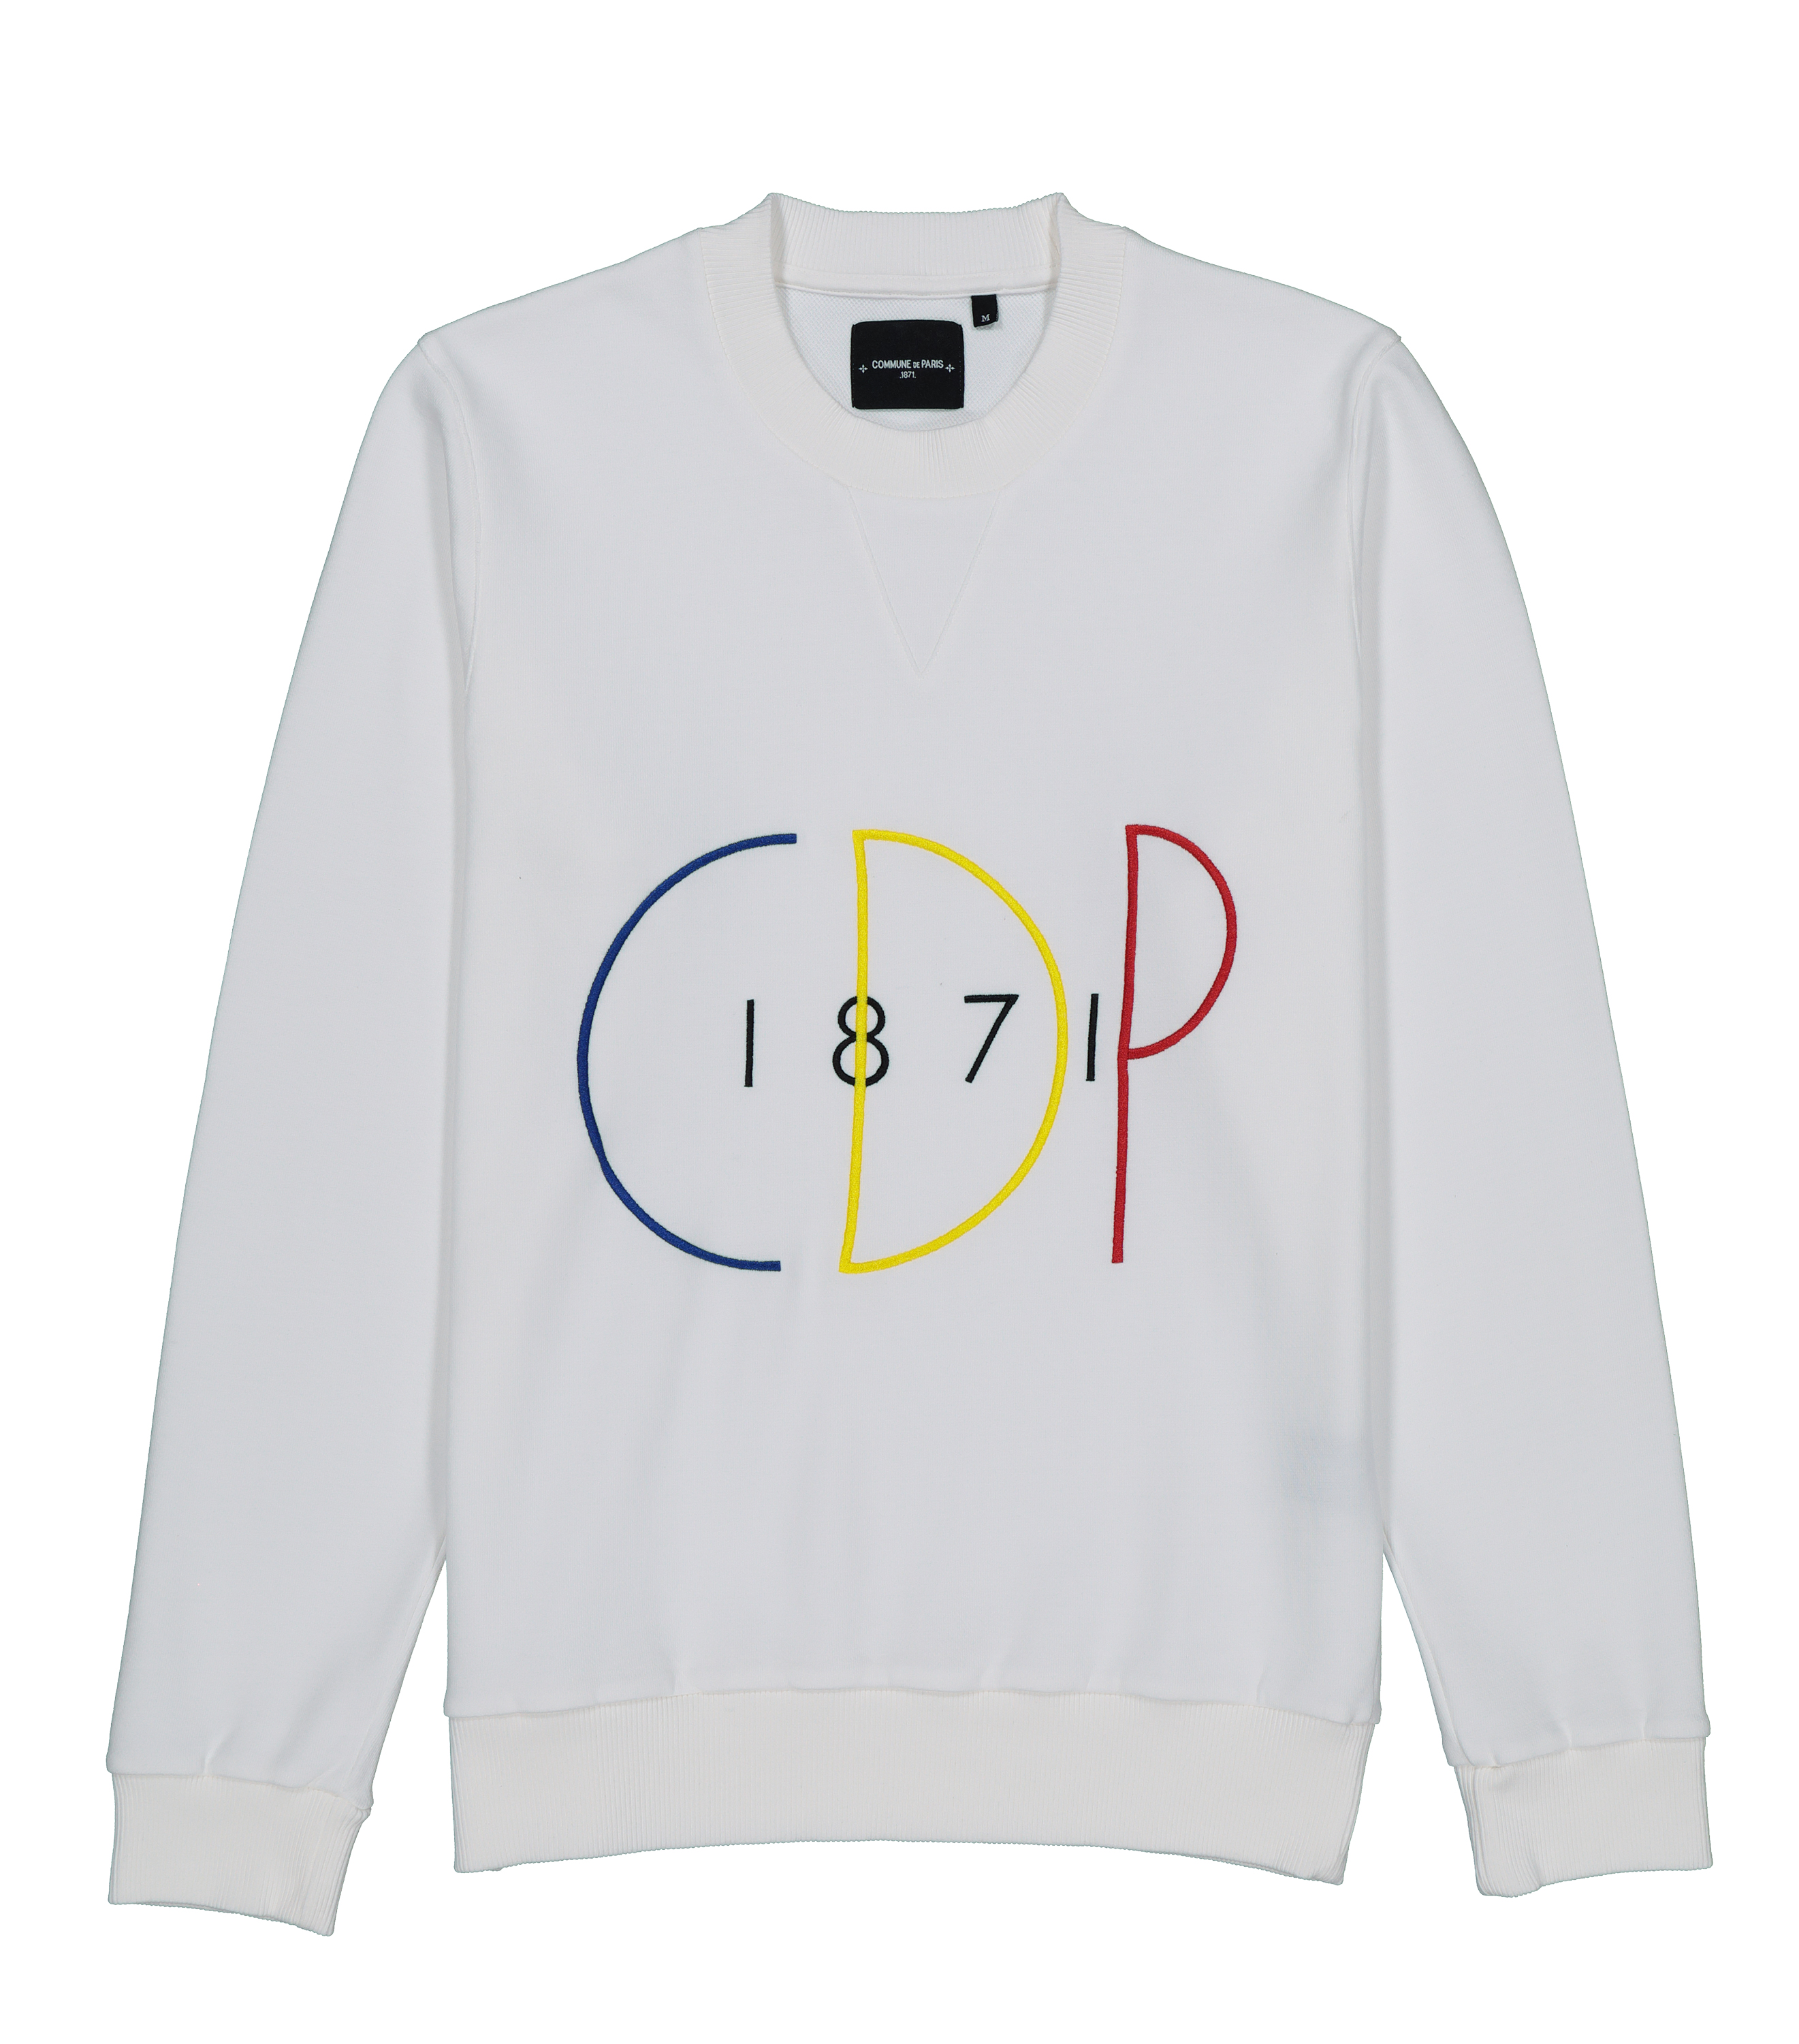 SWEAT CDP 1871 - Ivory